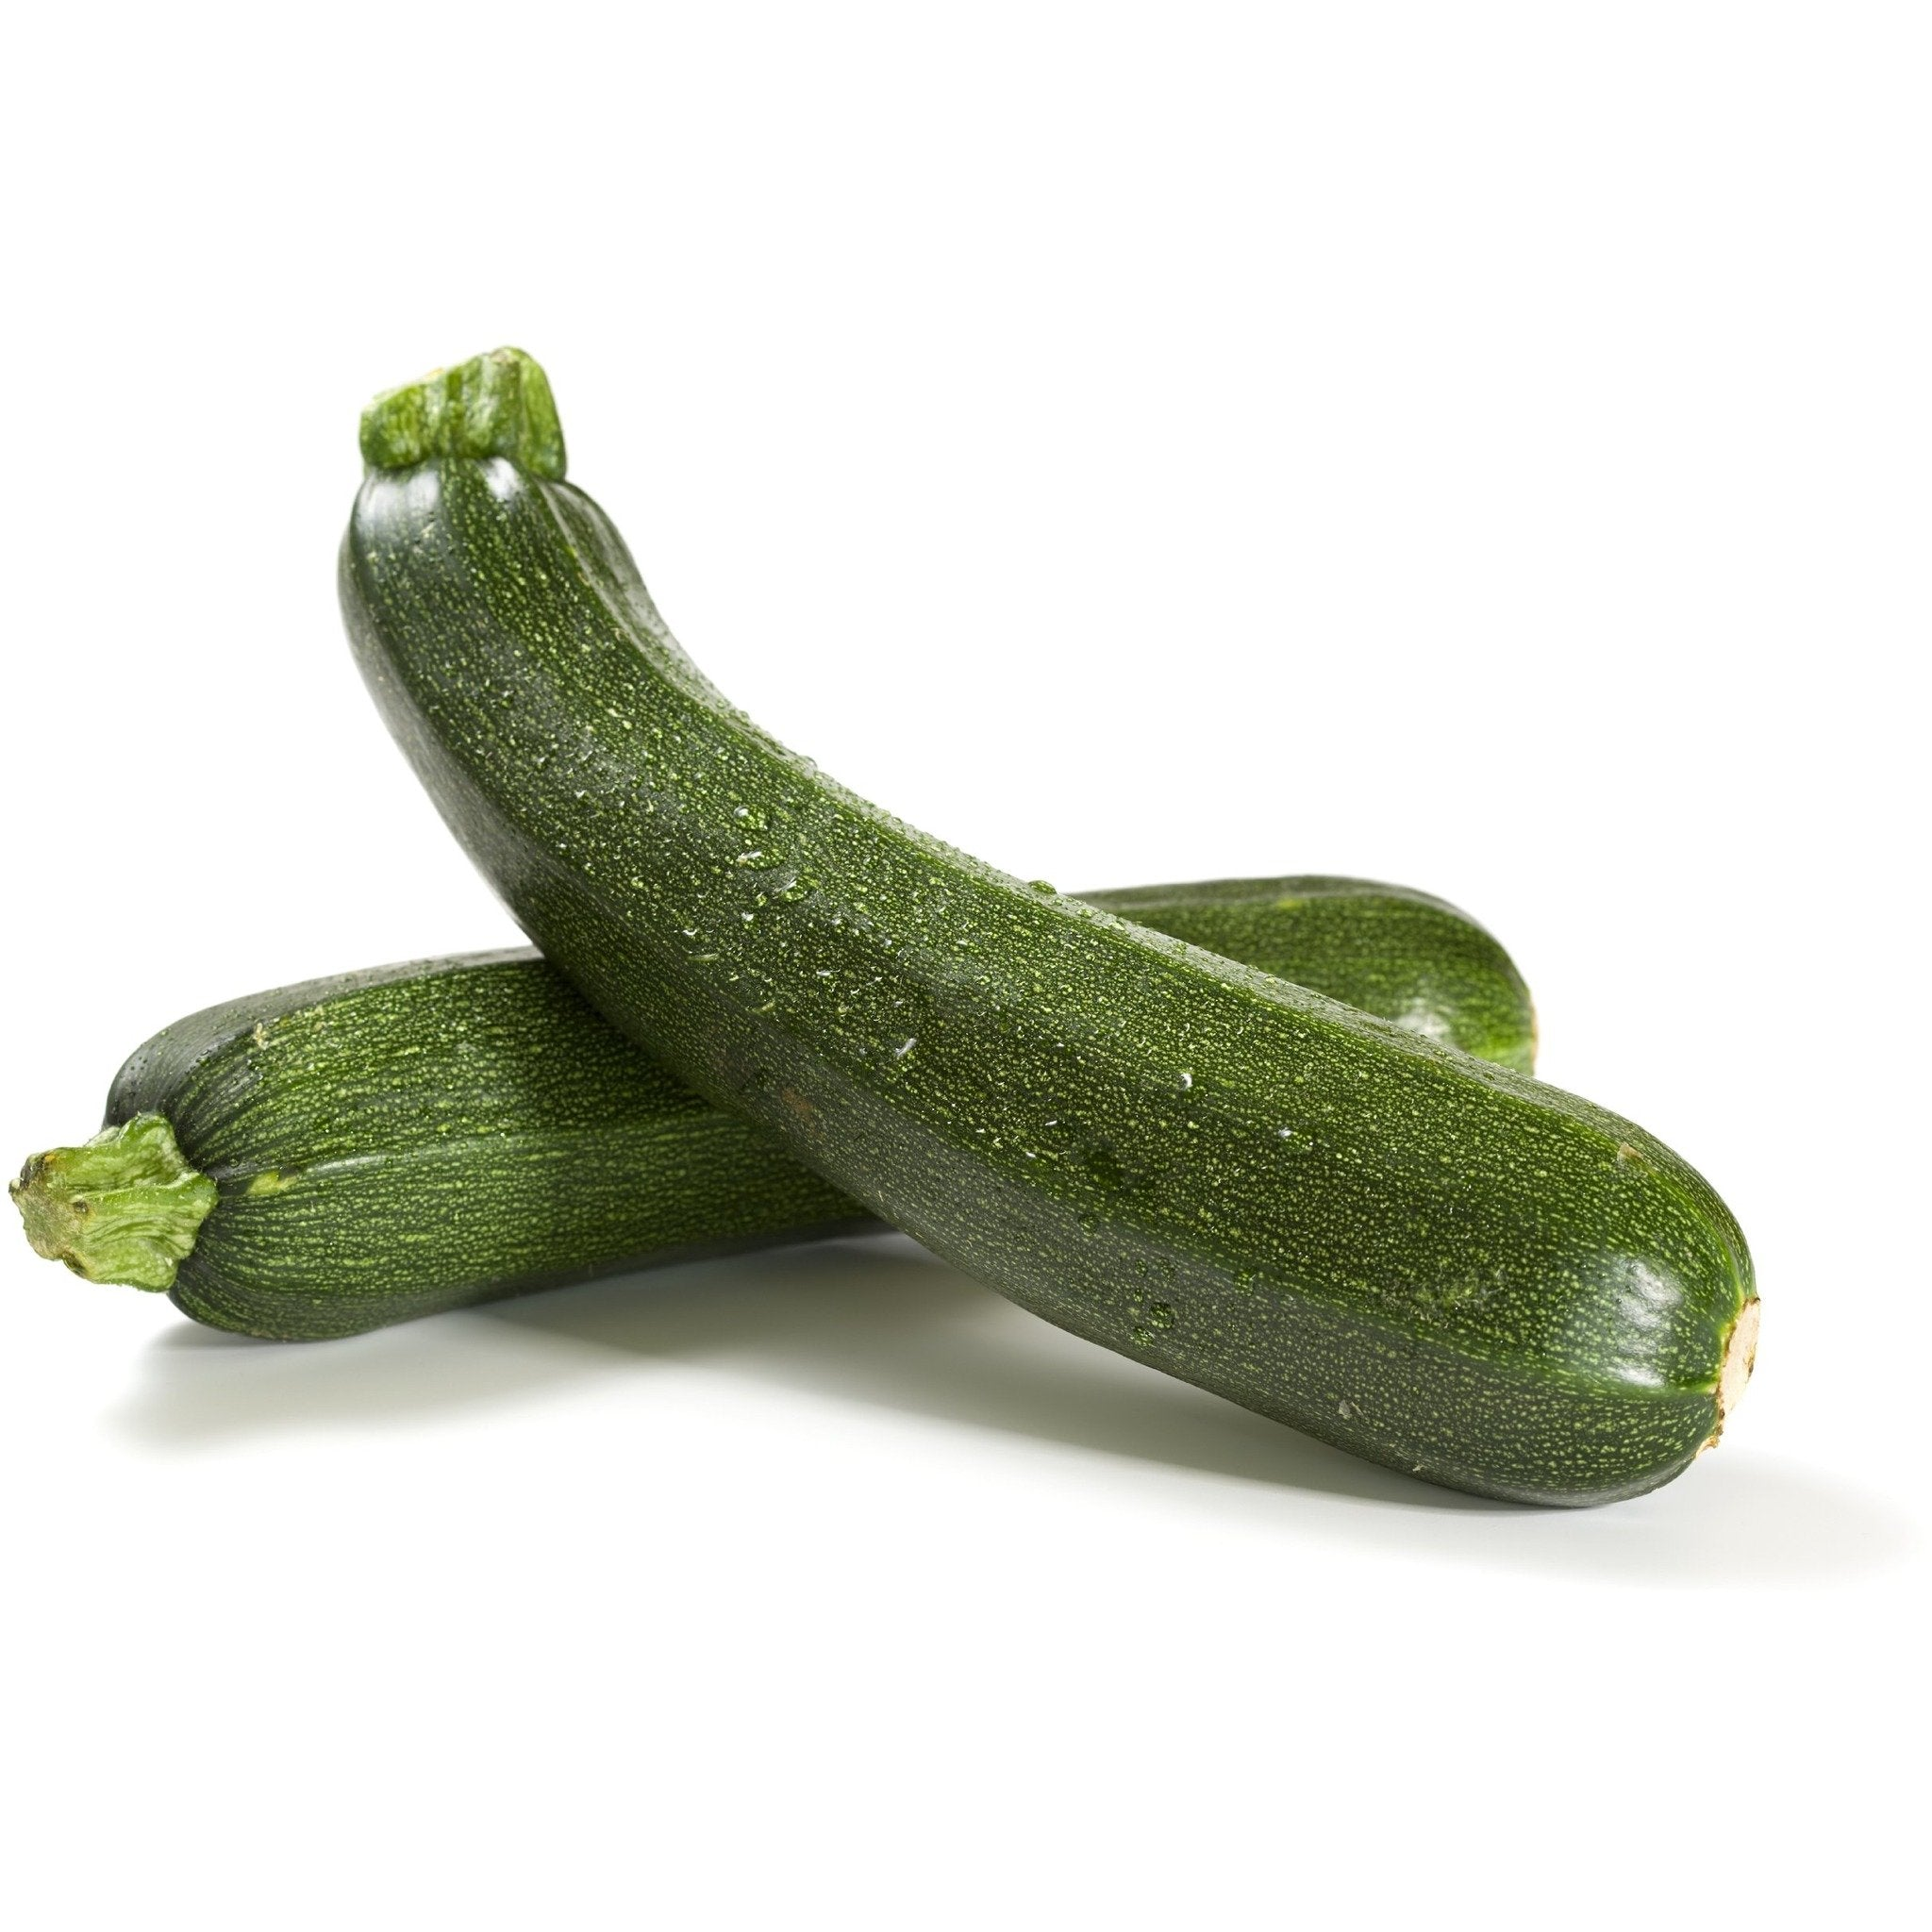 Zucchini Local (per pound)